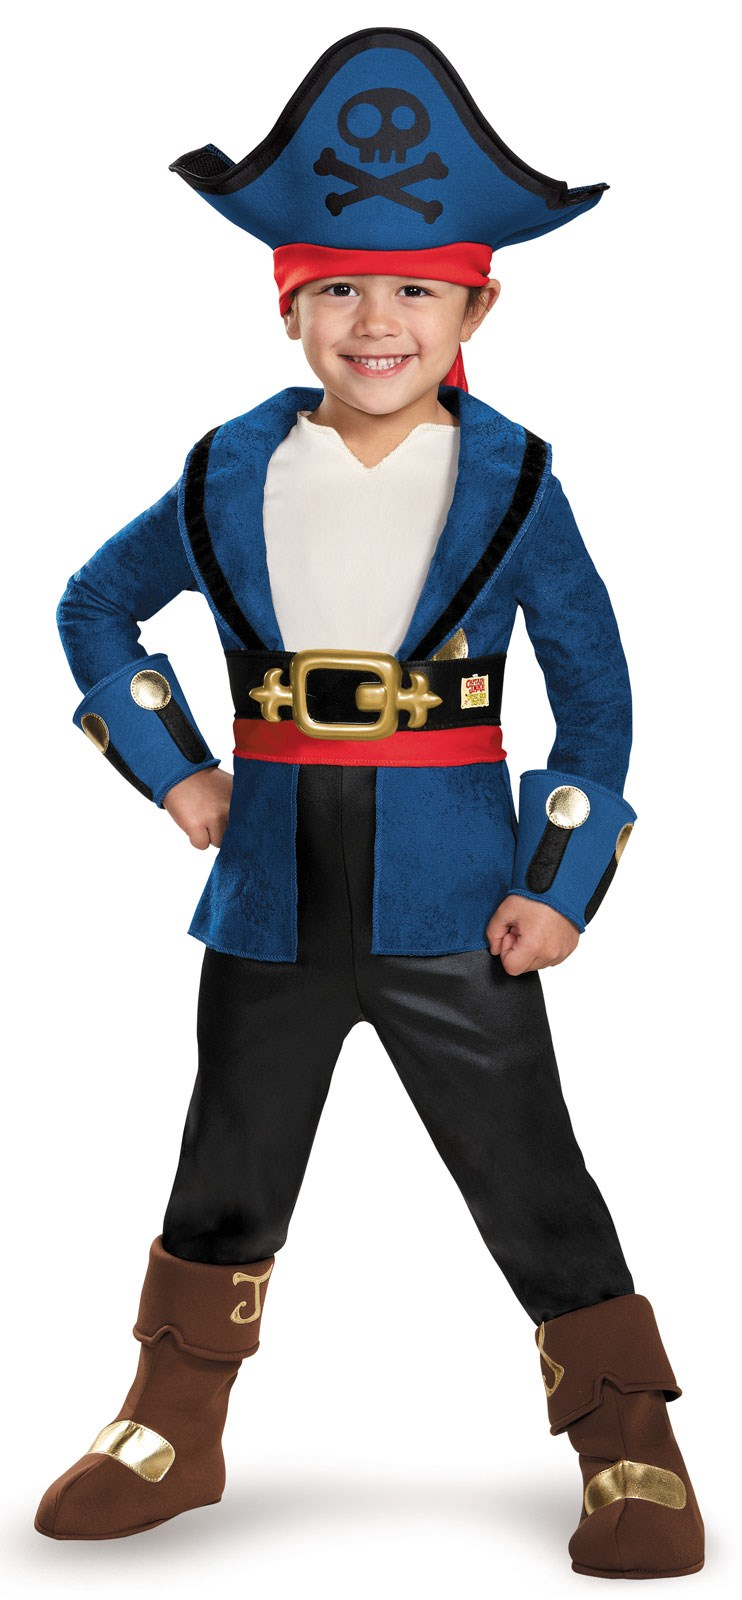 Captain Jake and the Never Land Pirates: Kids Deluxe Captain Jake Costume